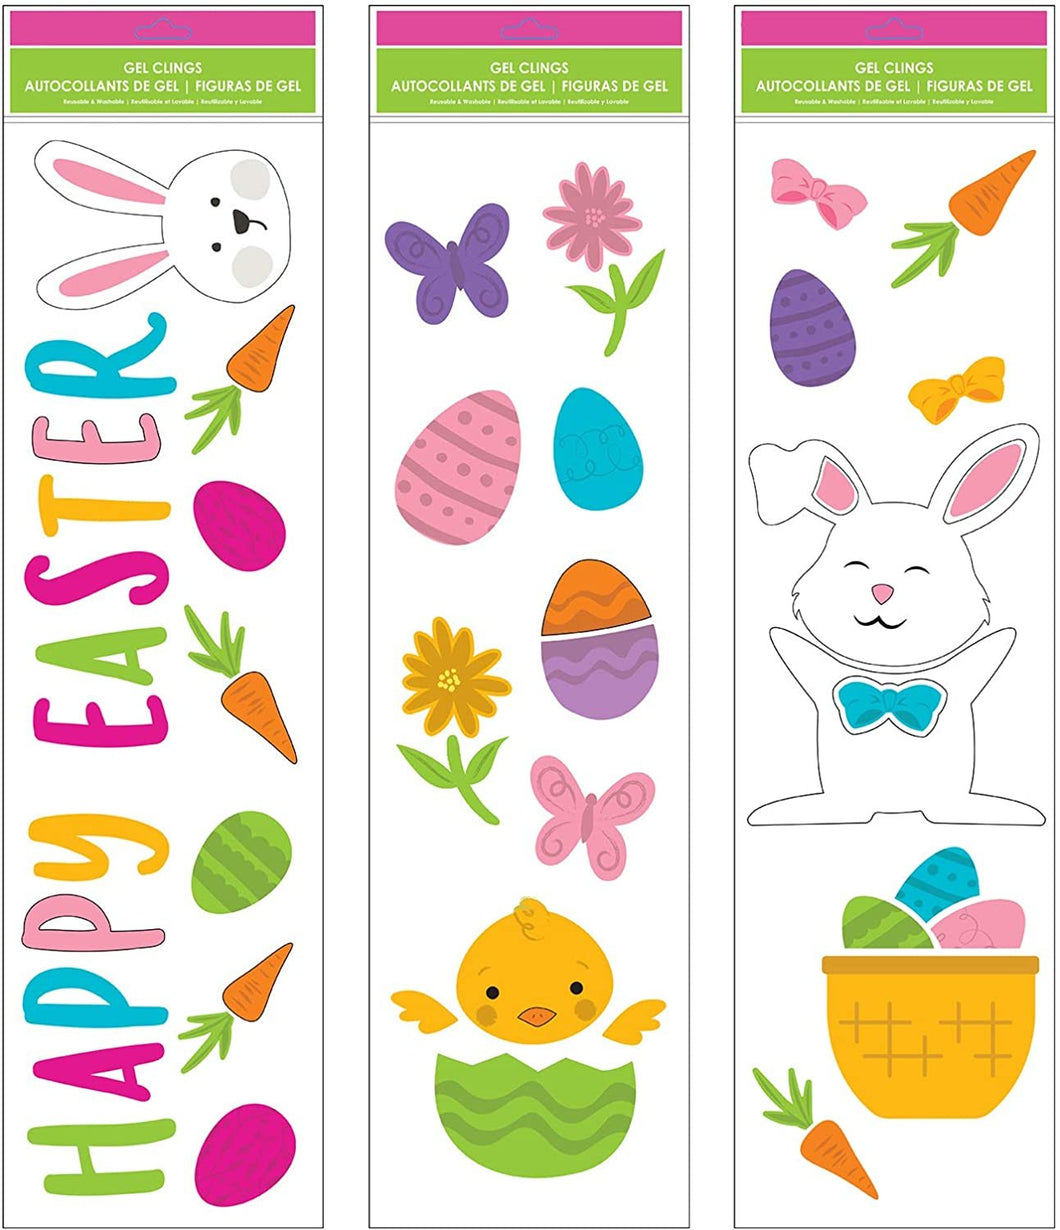 Easter Window Gel Clings - Pack of 3 Sheets of Easter Window Sticker Decorations with Chick, Bunnies, Eggs and More!